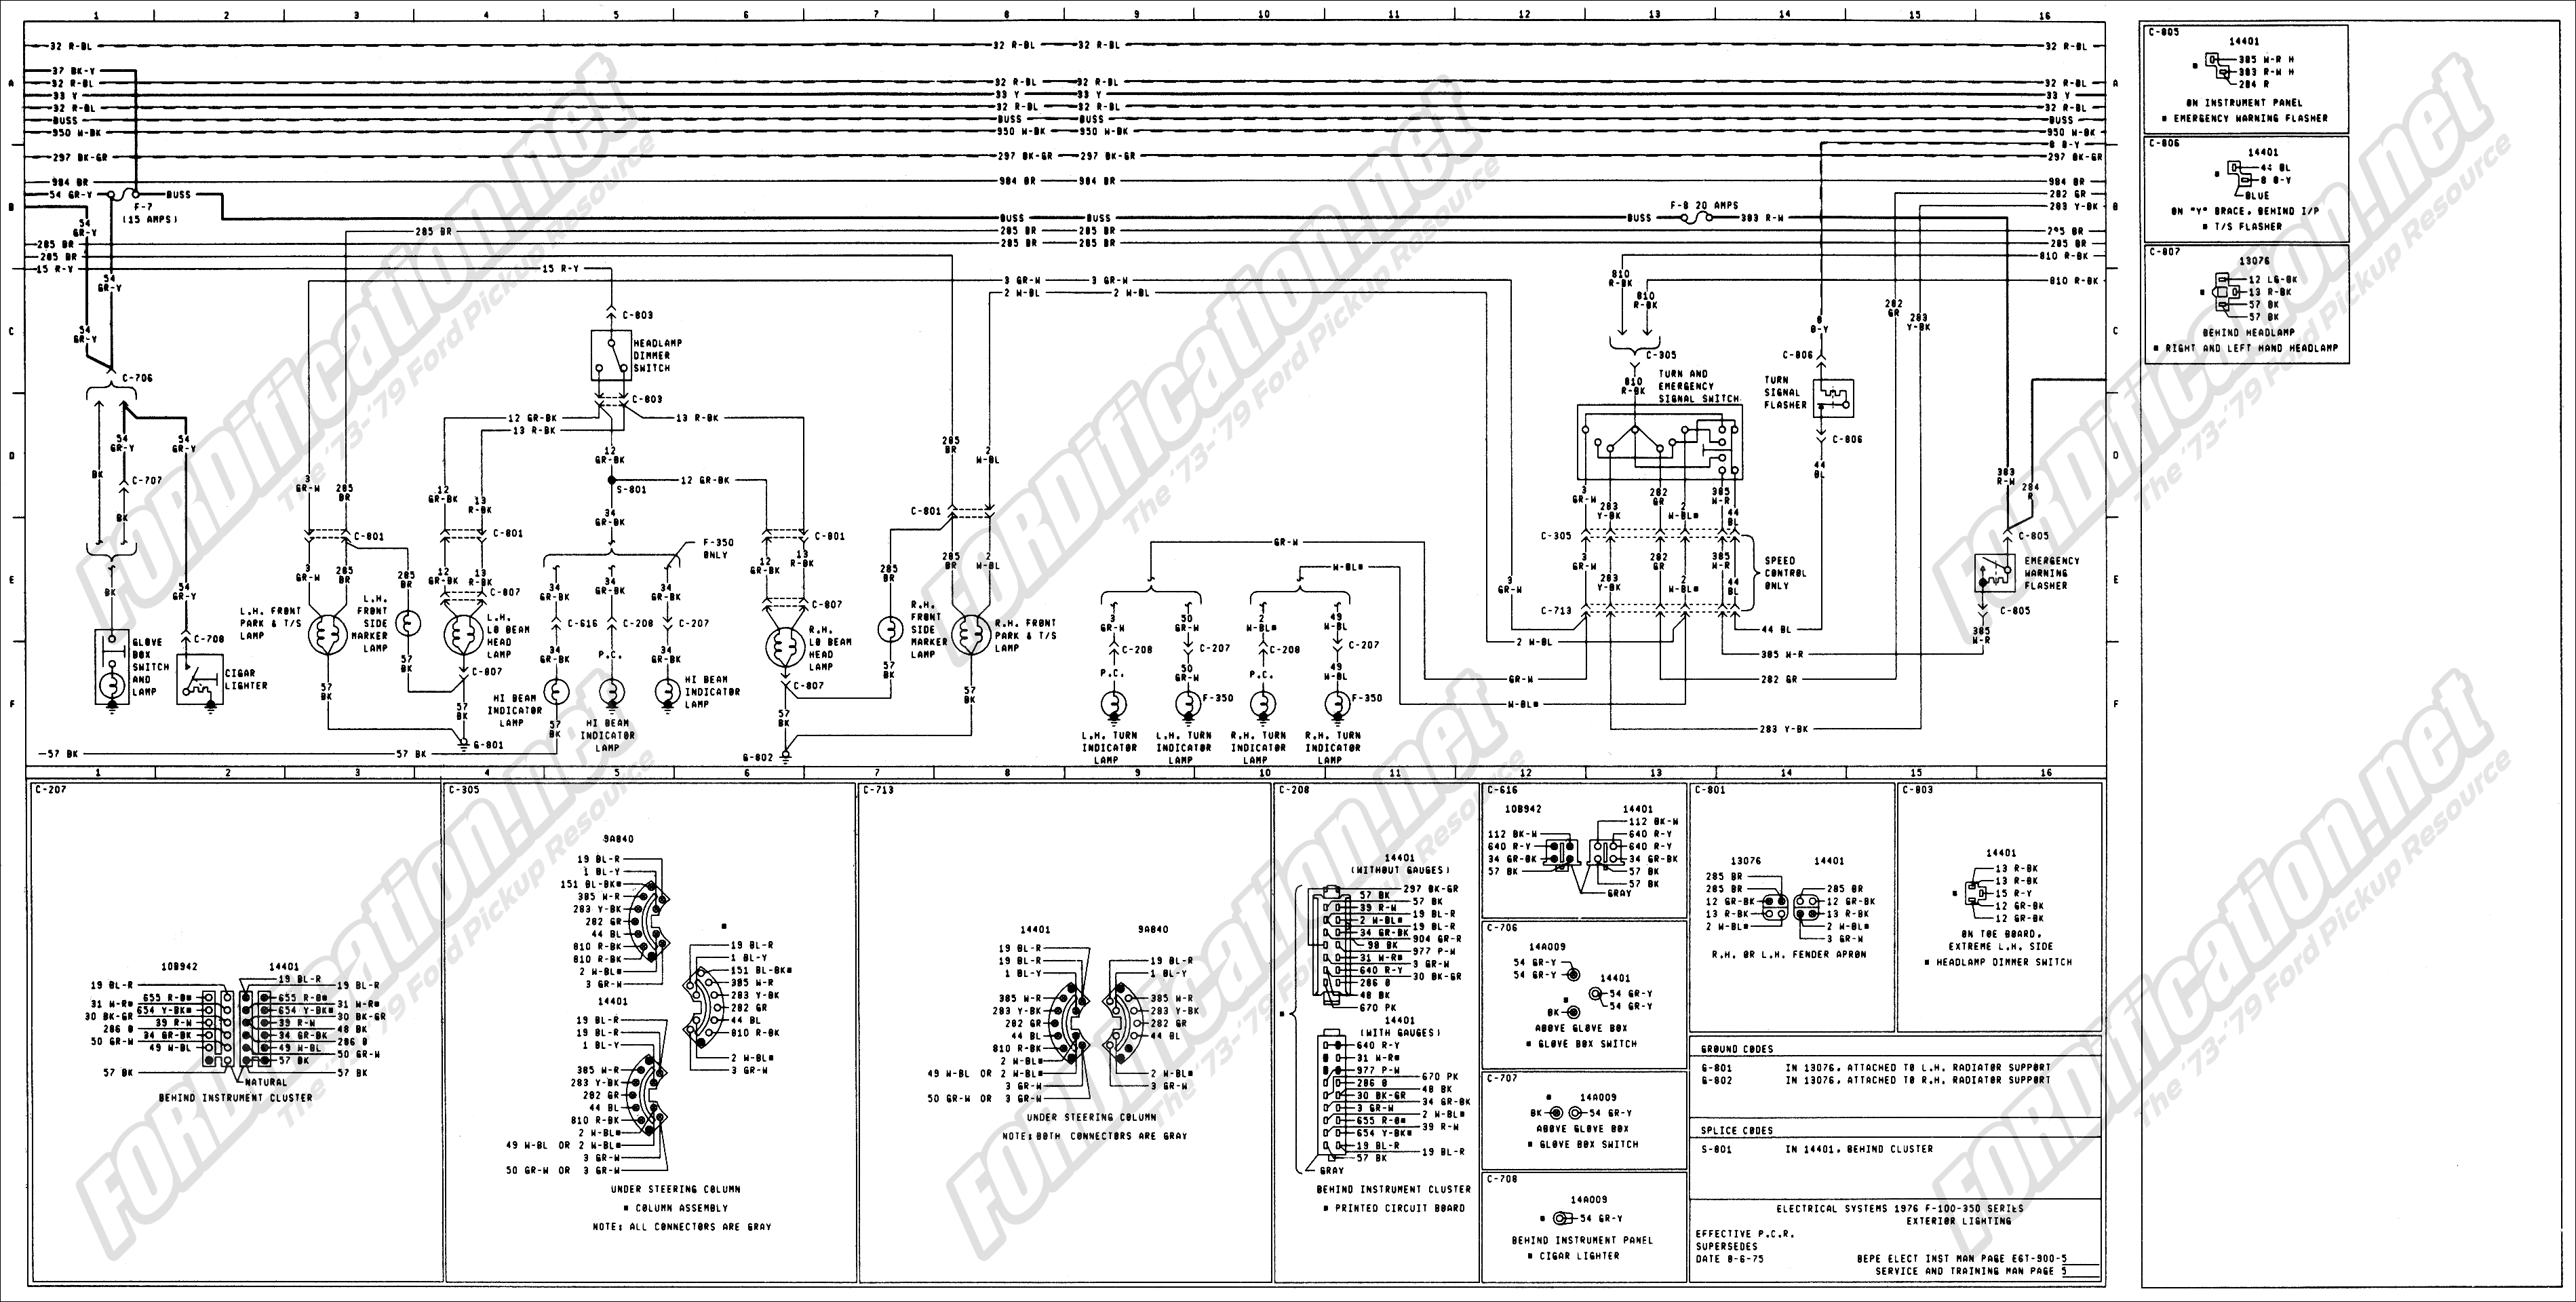 wiring_76master_5of9 1973 1979 ford truck wiring diagrams & schematics fordification net ford ignition wiring diagram at webbmarketing.co